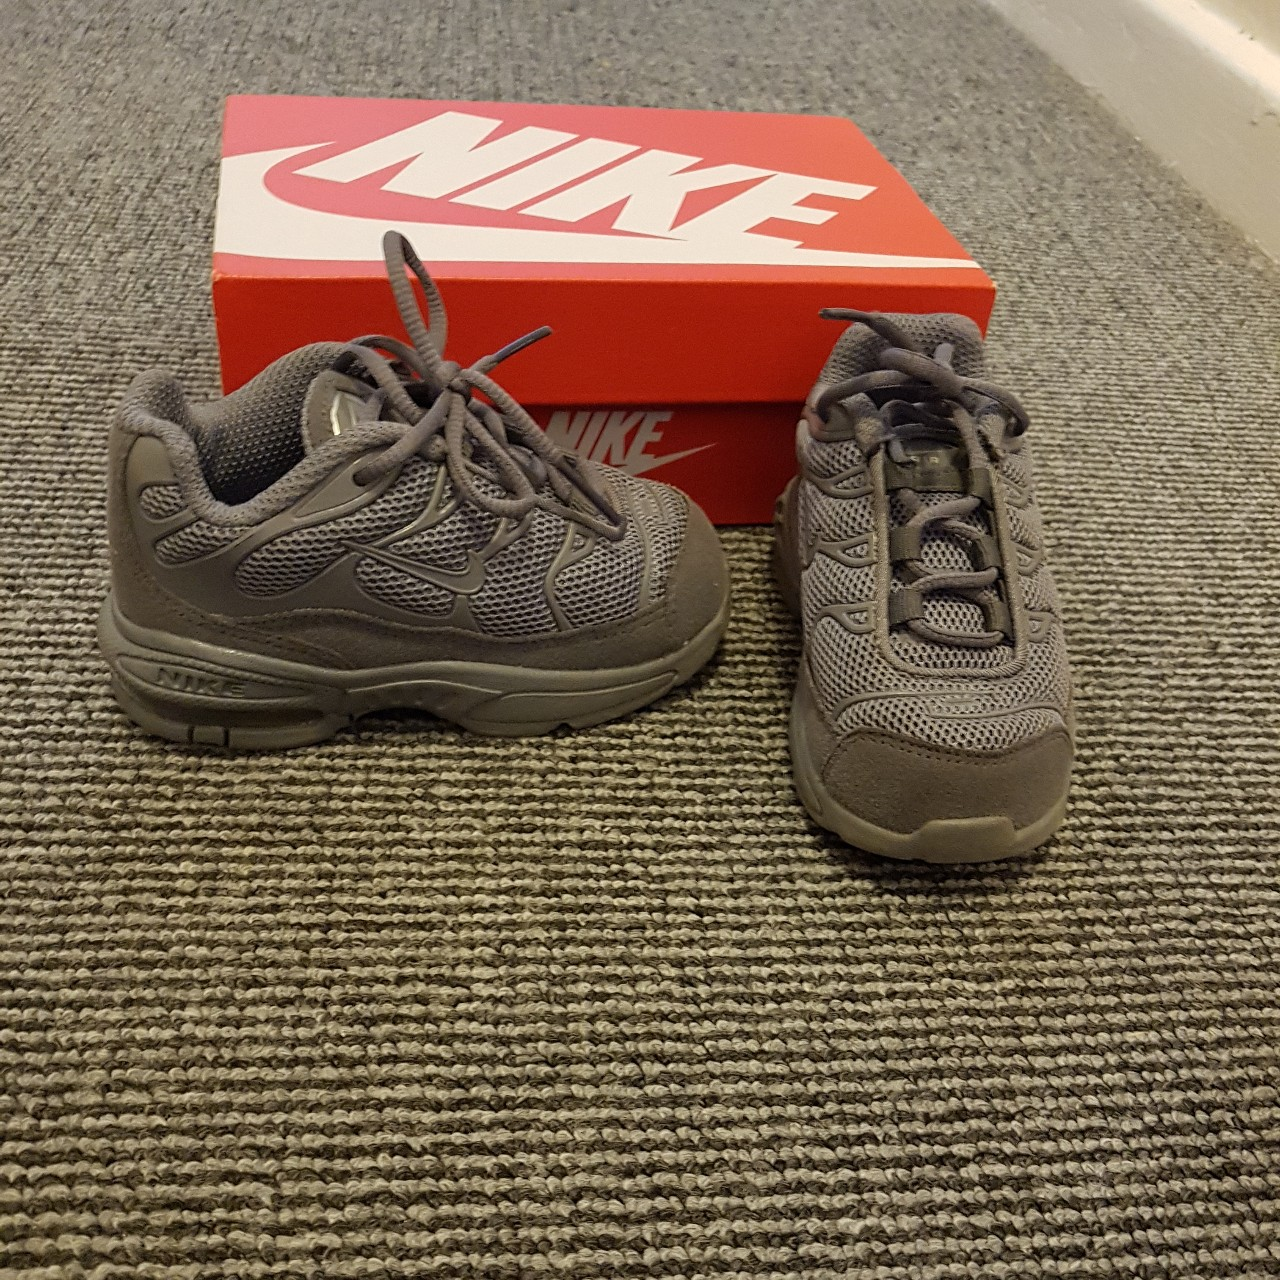 Infant boys trainers Nike Air Max 90 Size Depop